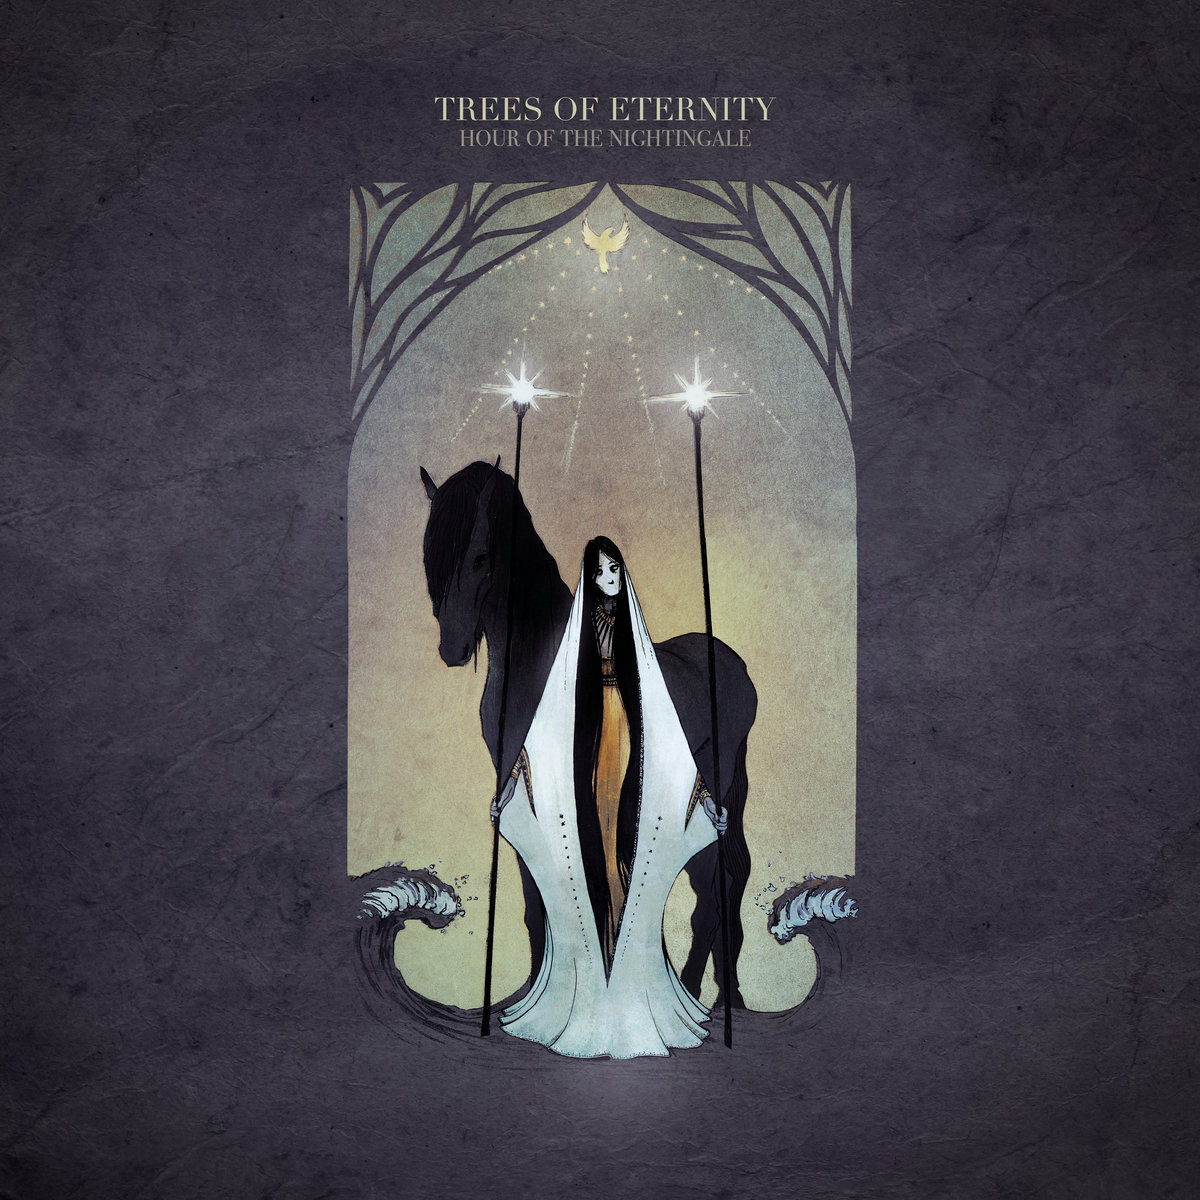 3. Trees Of Eternity - Hour Of The Nightingale